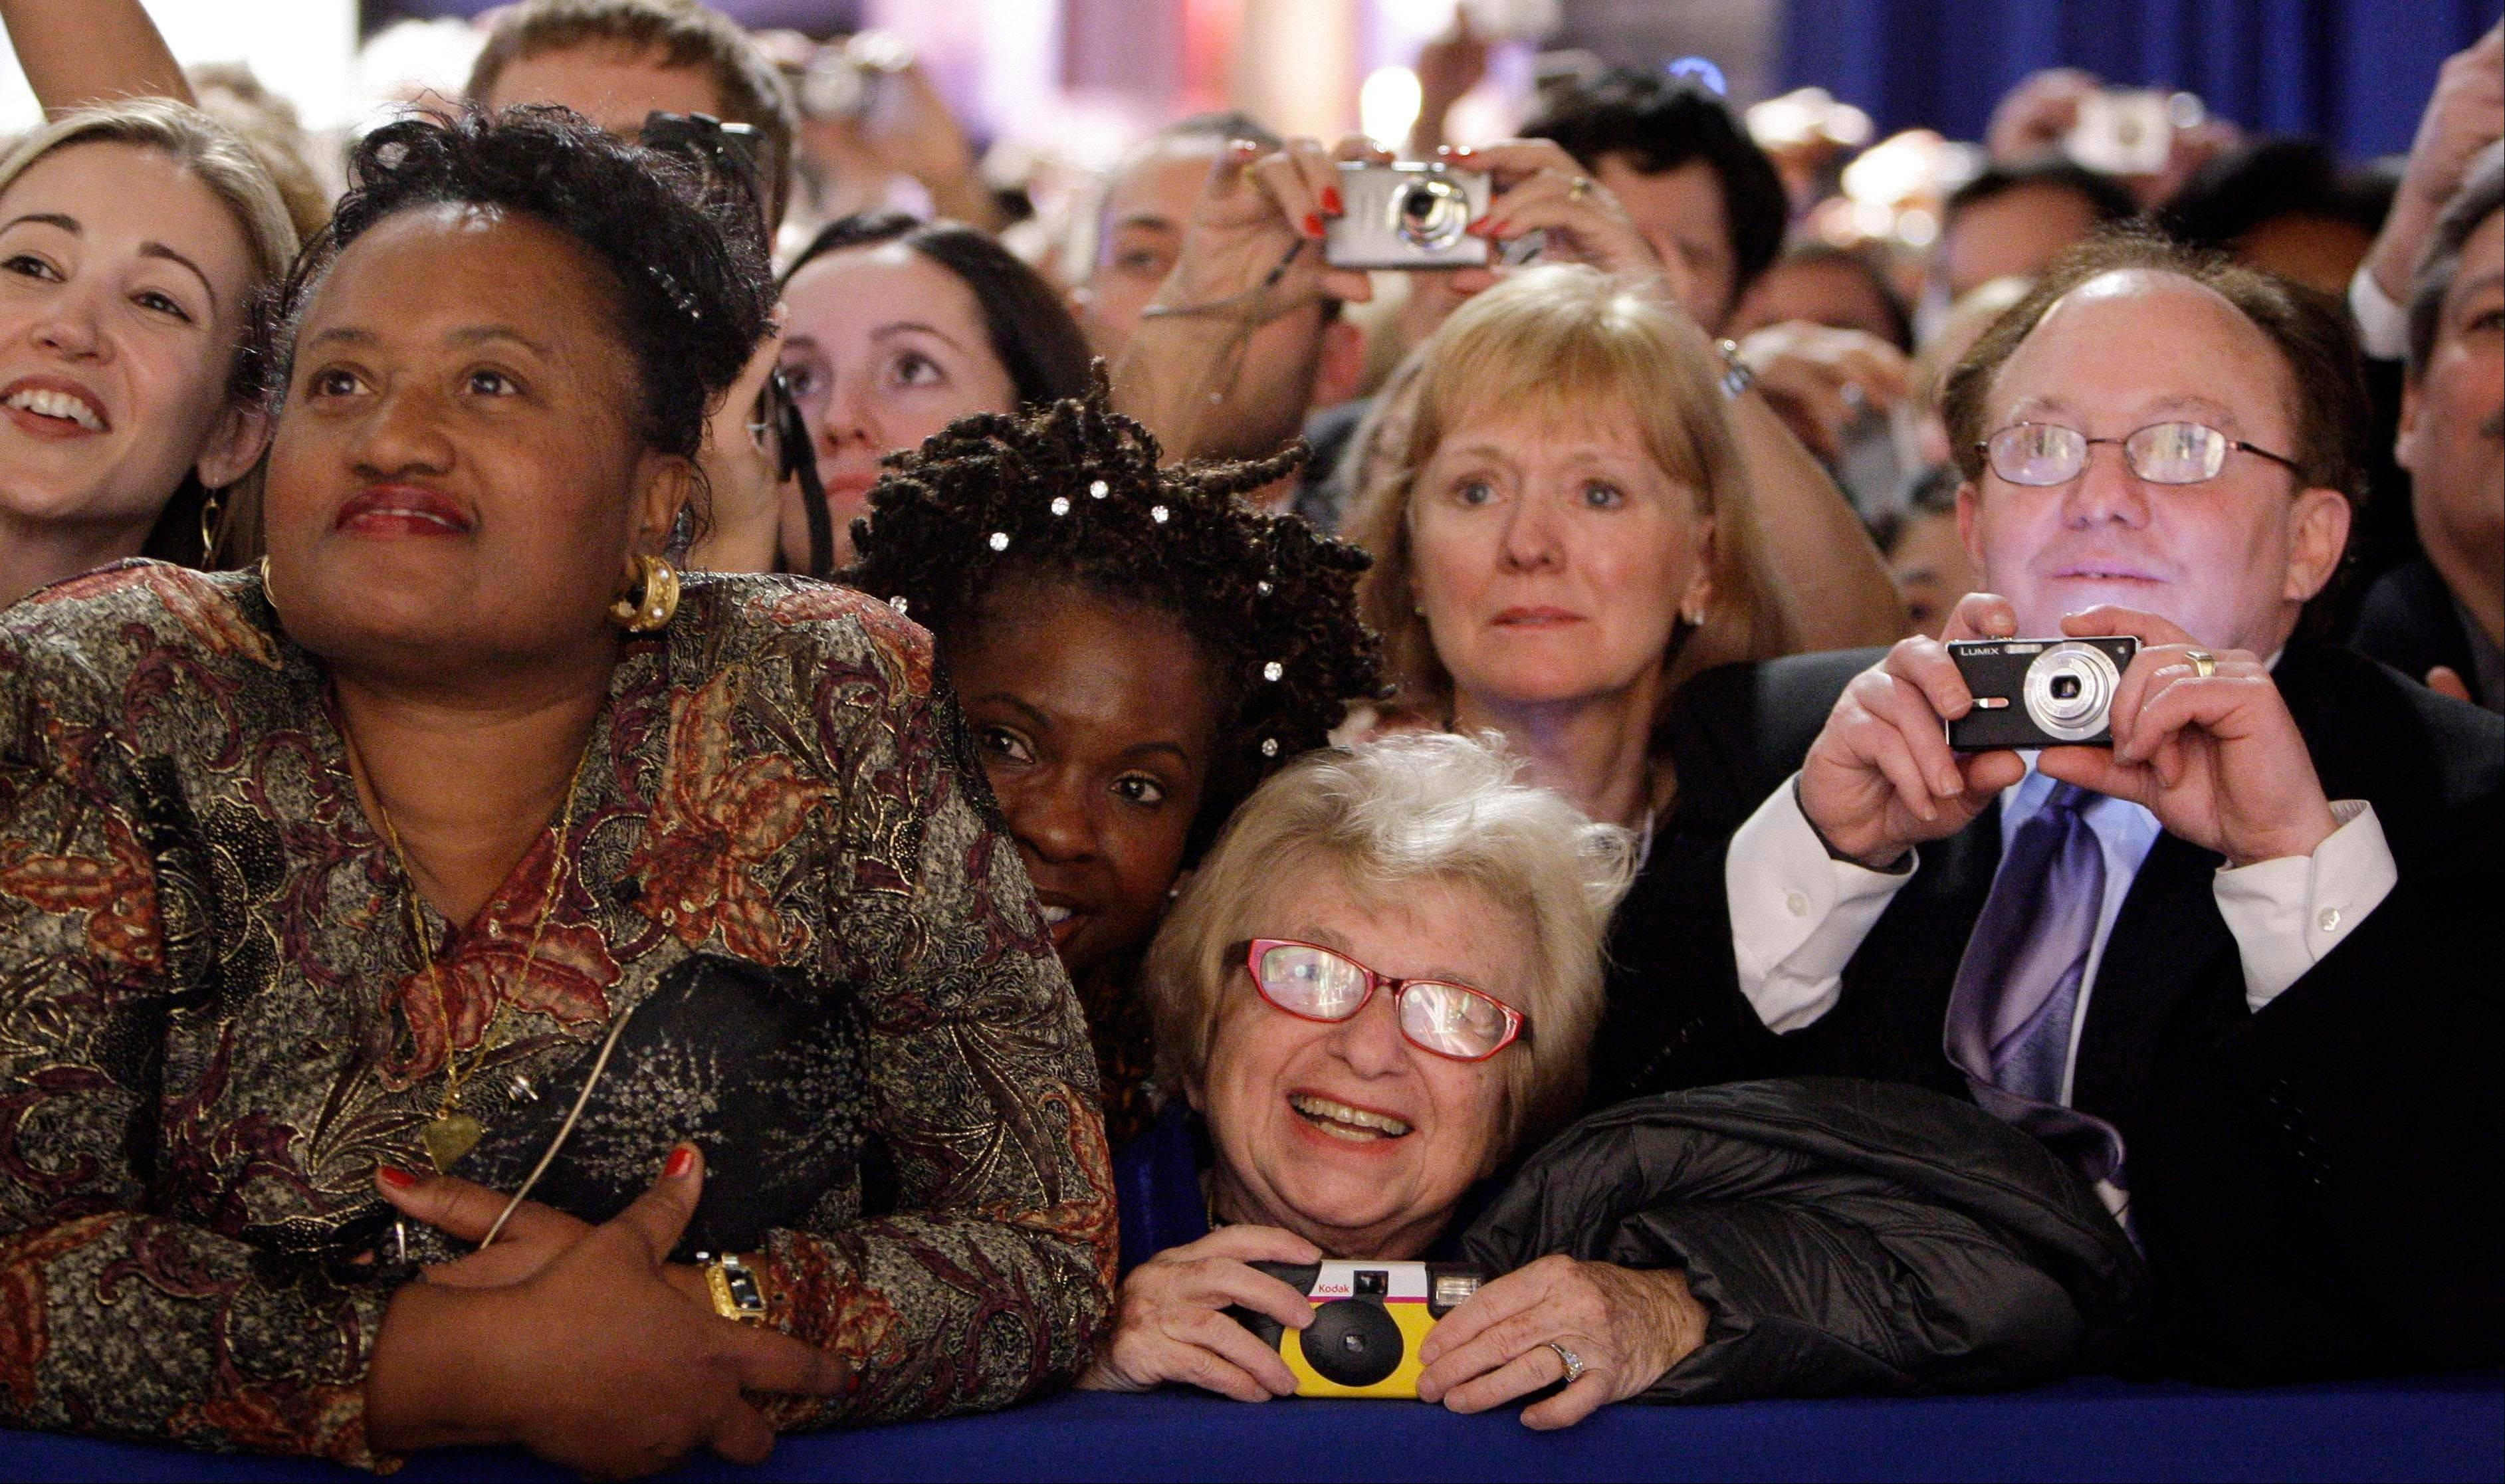 Dr. Ruth Westheimer, center, watches President Barack Obama and the first lady at an inauguration event in 2009. The sideline events throughout inauguration weekend are the big draws for advocates and lobbyists looking to rub elbows with lawmakers and administration officials. The events at restaurants and hotels, museums and mansions are opportunities for anyone willing to write a check to turn a night out into a chance to build a Rolodex of Washington�s power brokers.